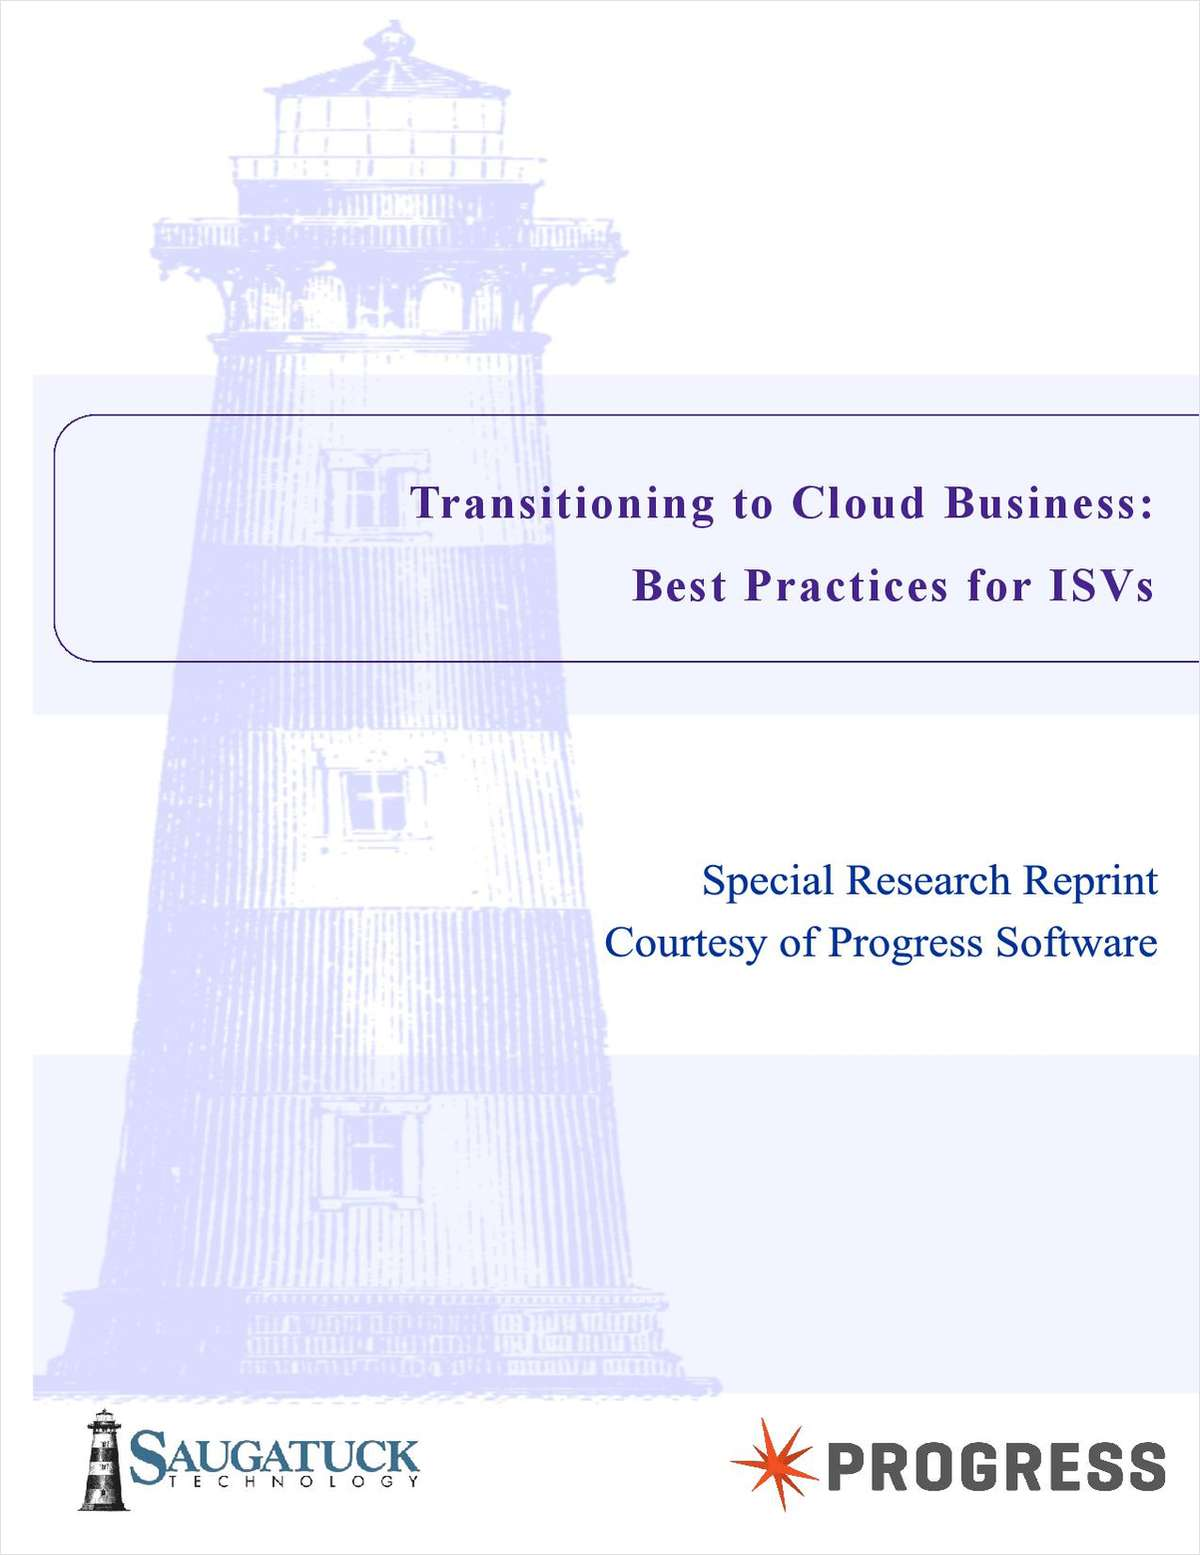 Saugatuck Strategic Report - Transitioning to Cloud Business: Best Practices for ISVs